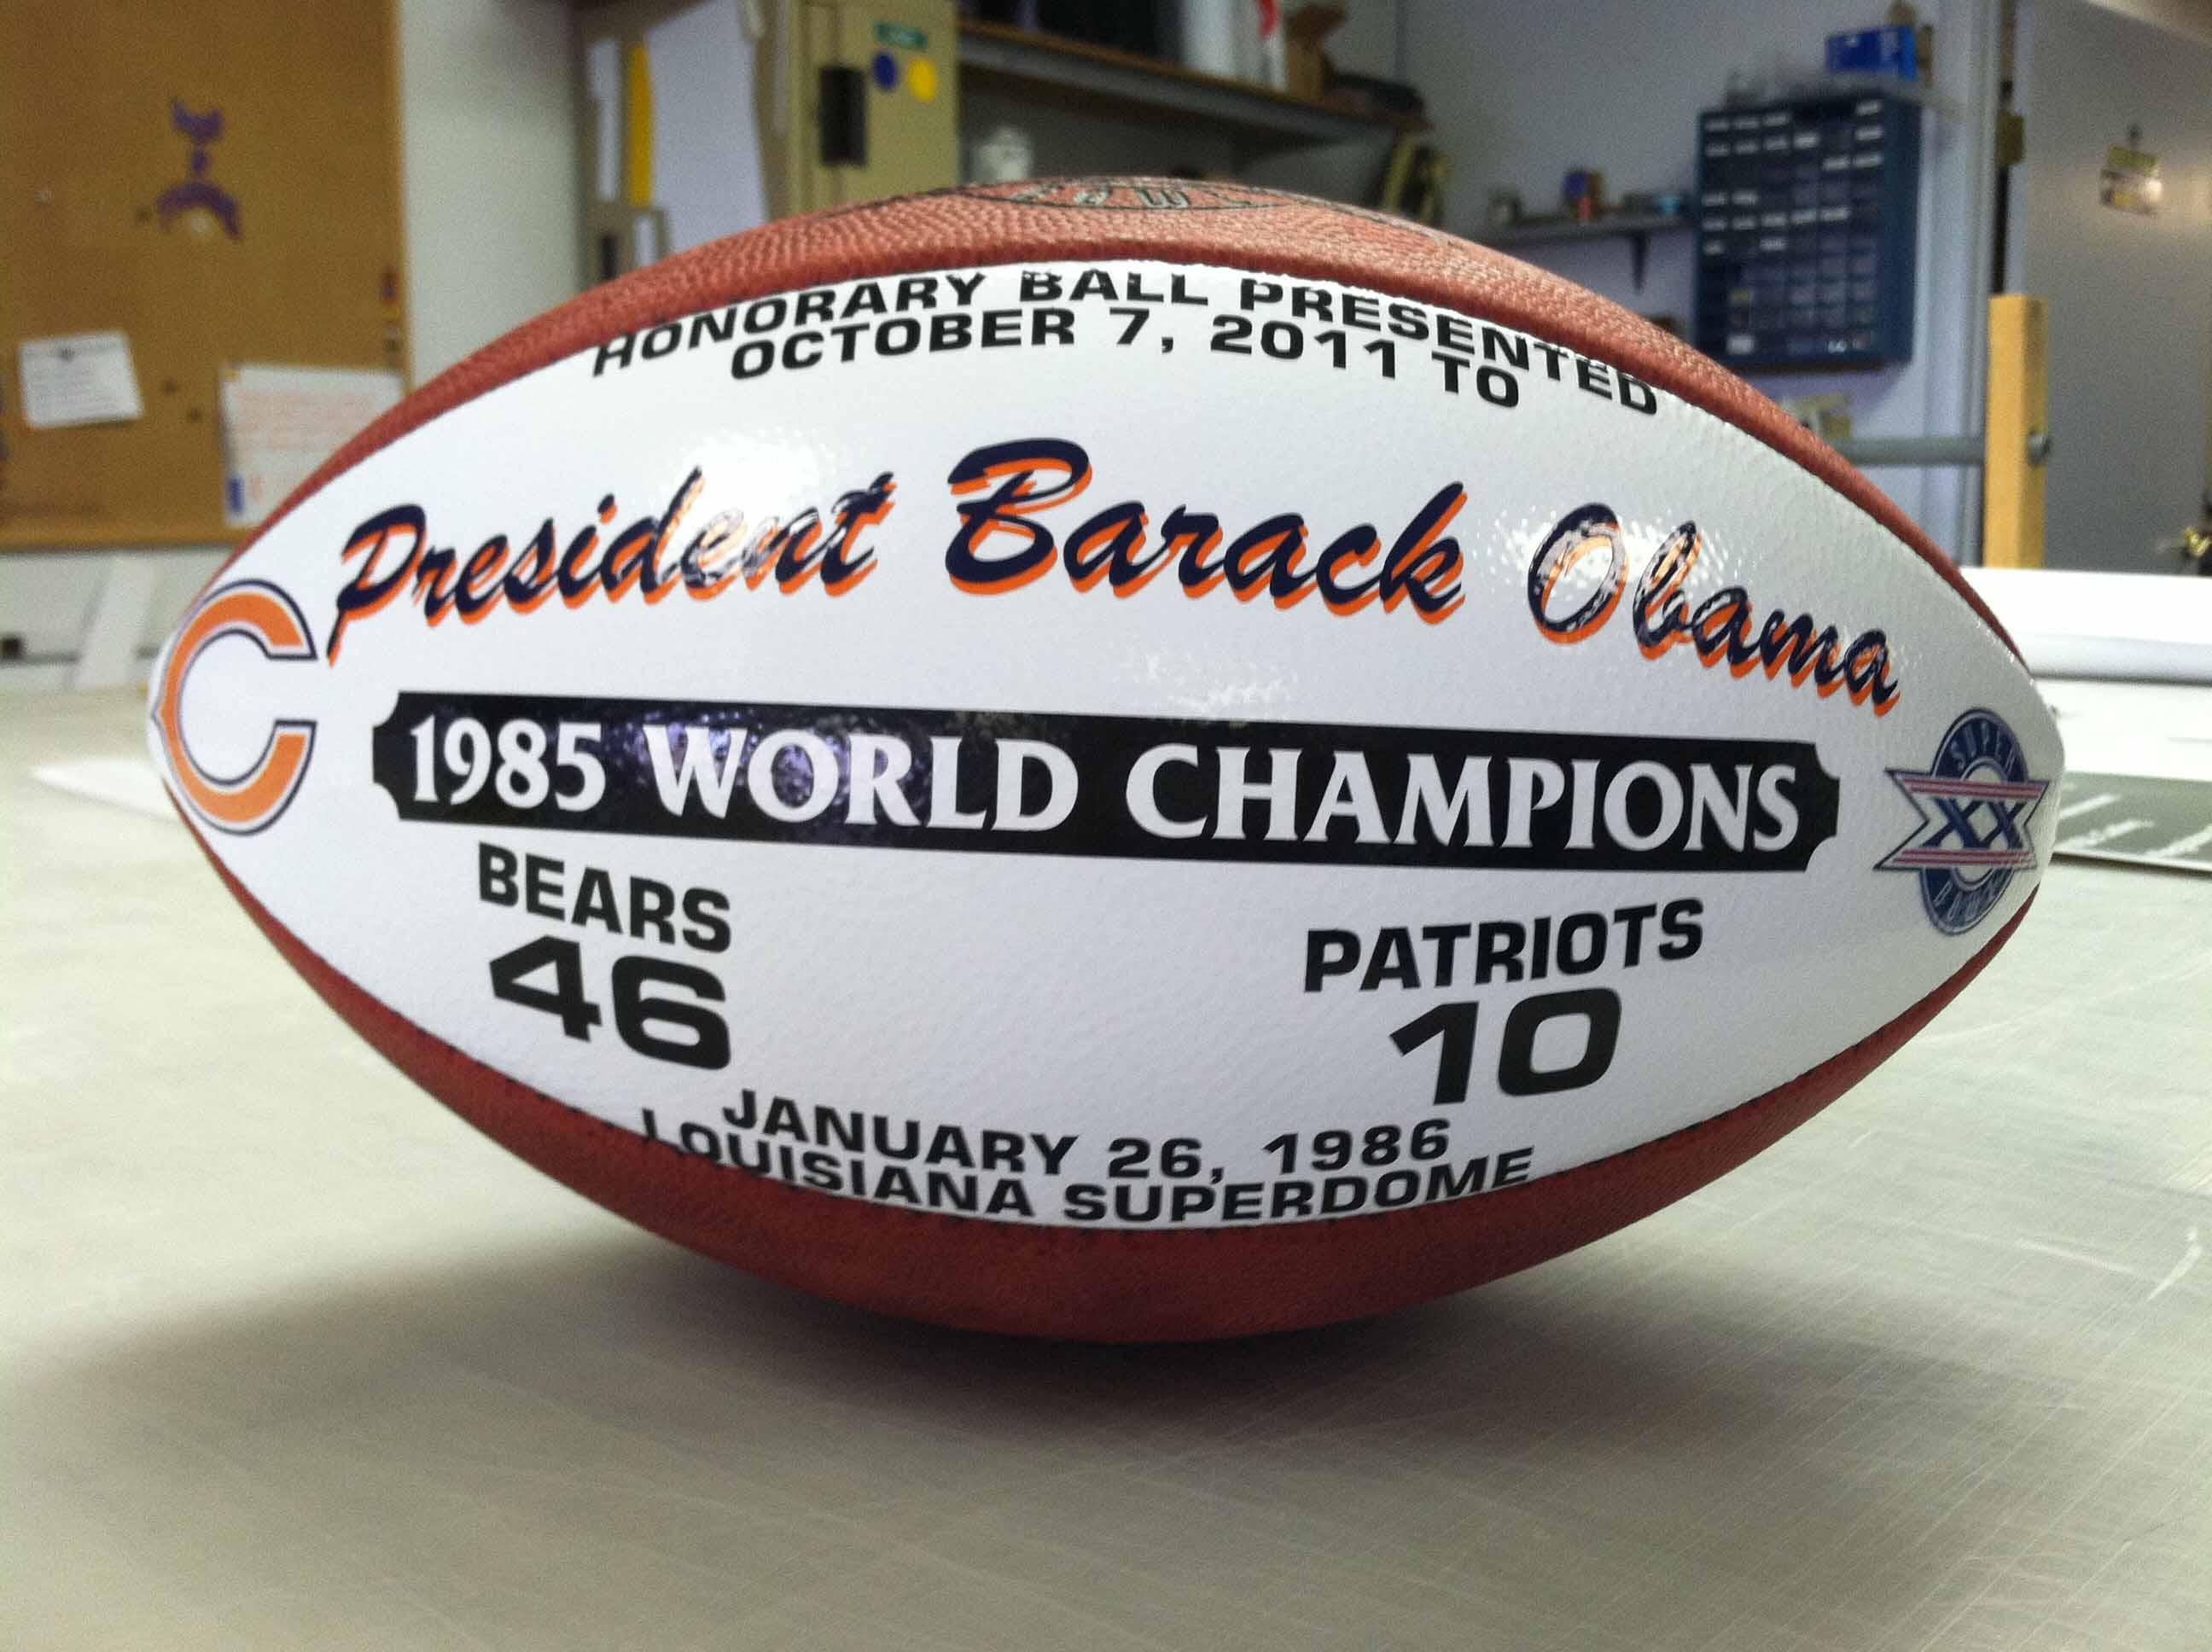 OBAMA'S GAME BALL